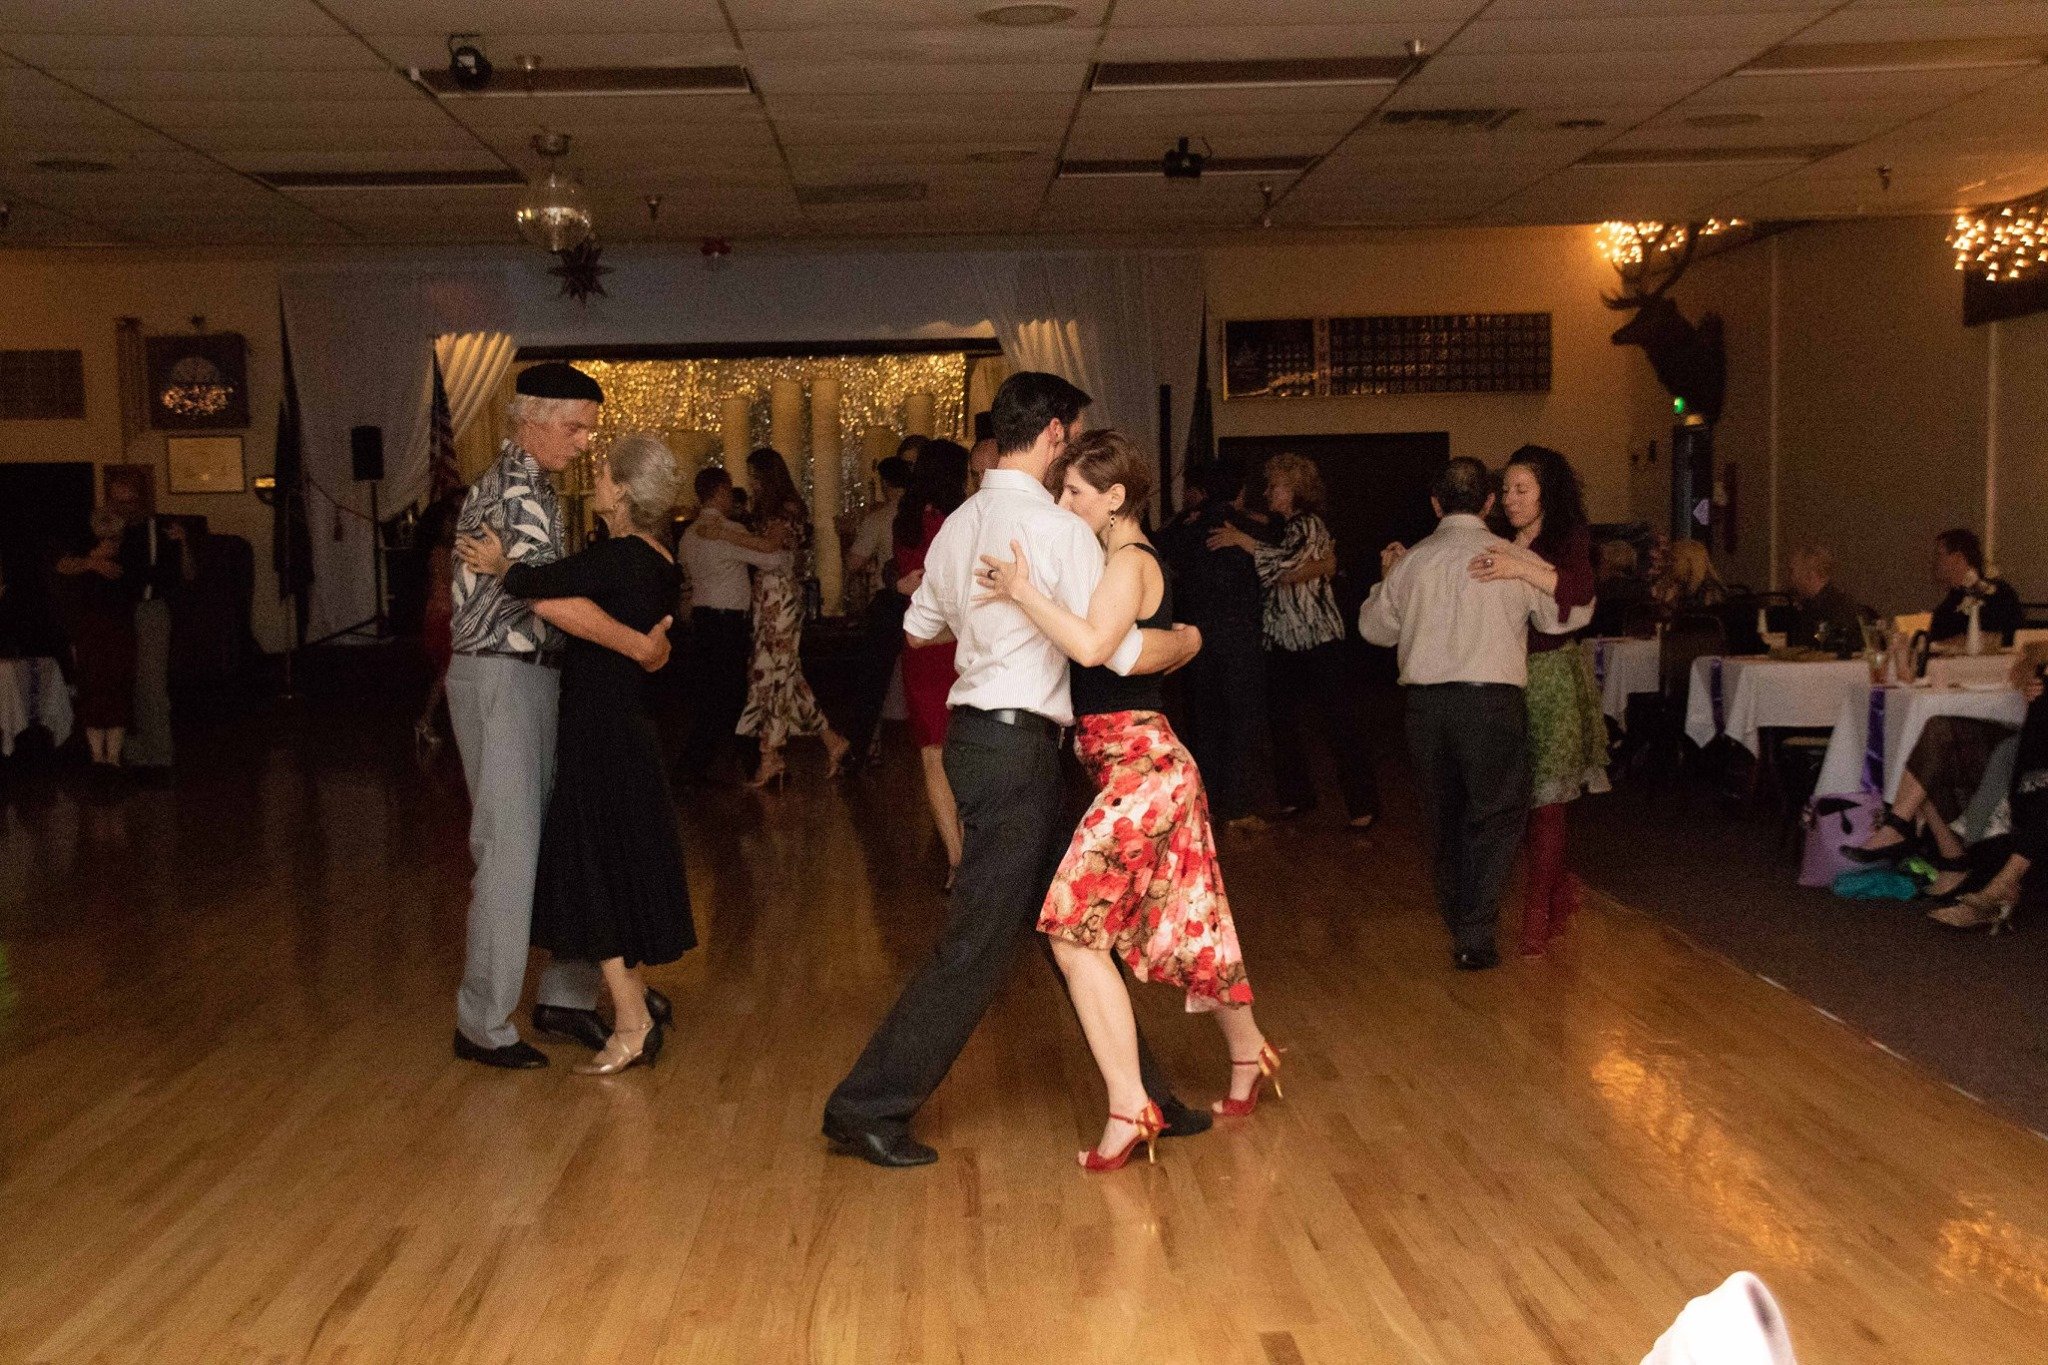 CALENDAR - Want to be a part of Backstreet Tango? Check out our calendar for upcoming classes and events. See our calendar at a glance at the bottom of this page